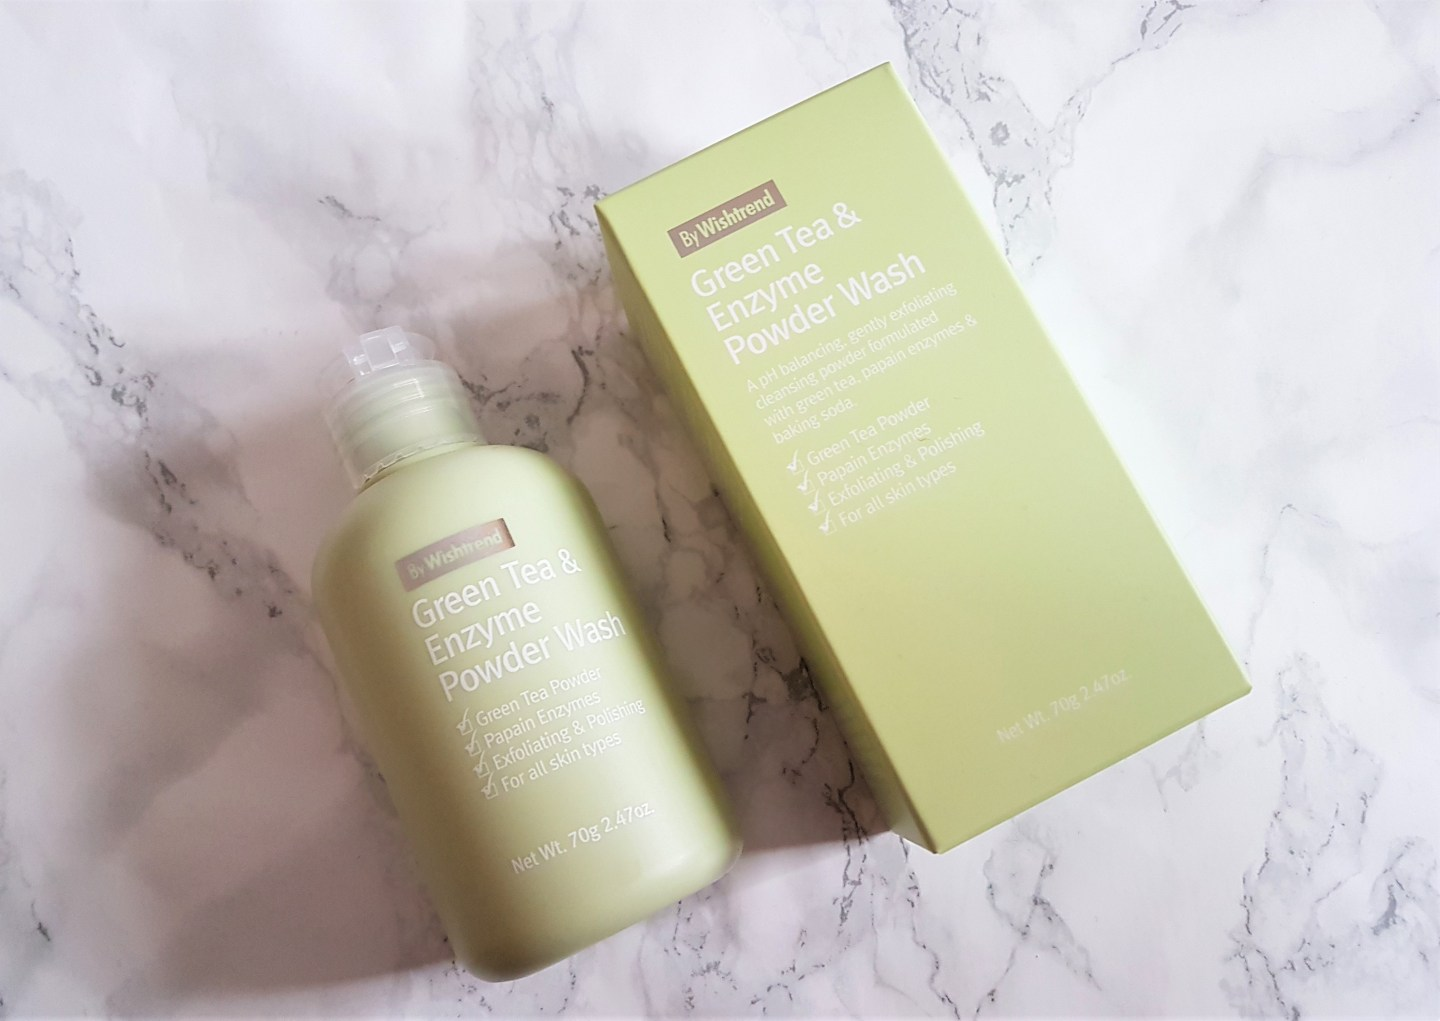 REVIEW: BY WISHTREND Green Tea & Enzyme Powder Wash + comparison with other enzyme powders